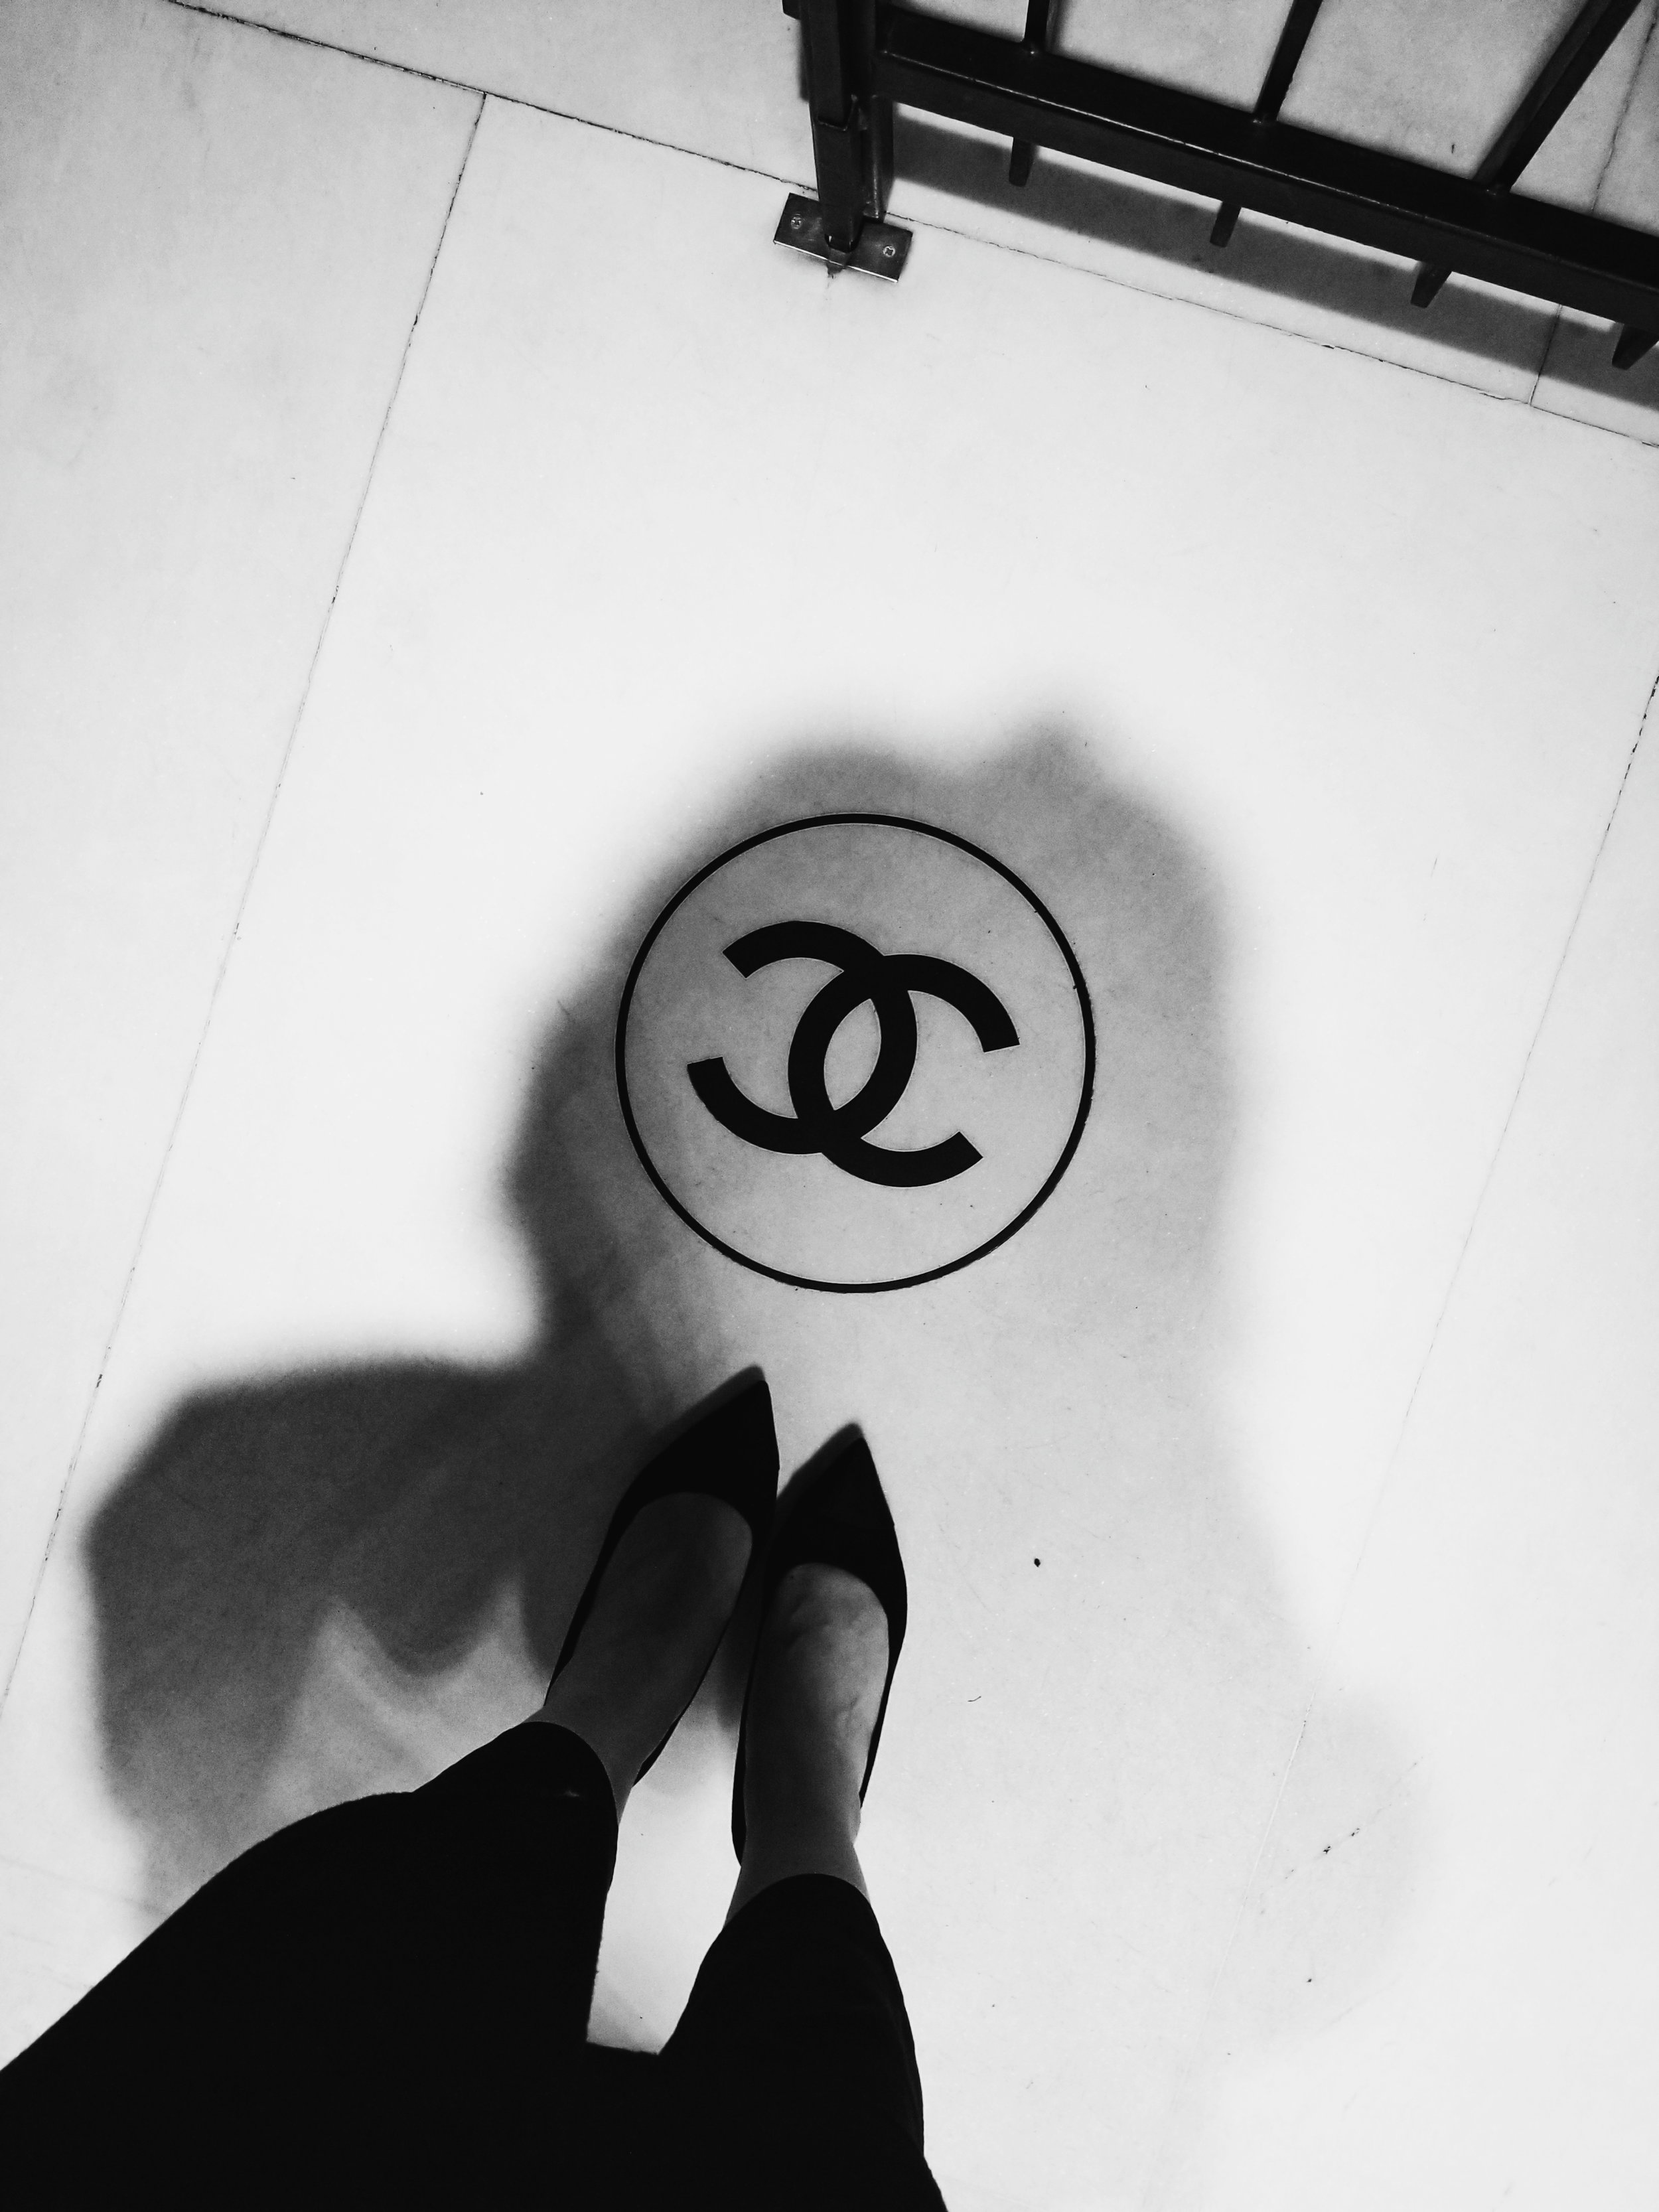 postcards-from-paris-chanel-apartment-01.jpg